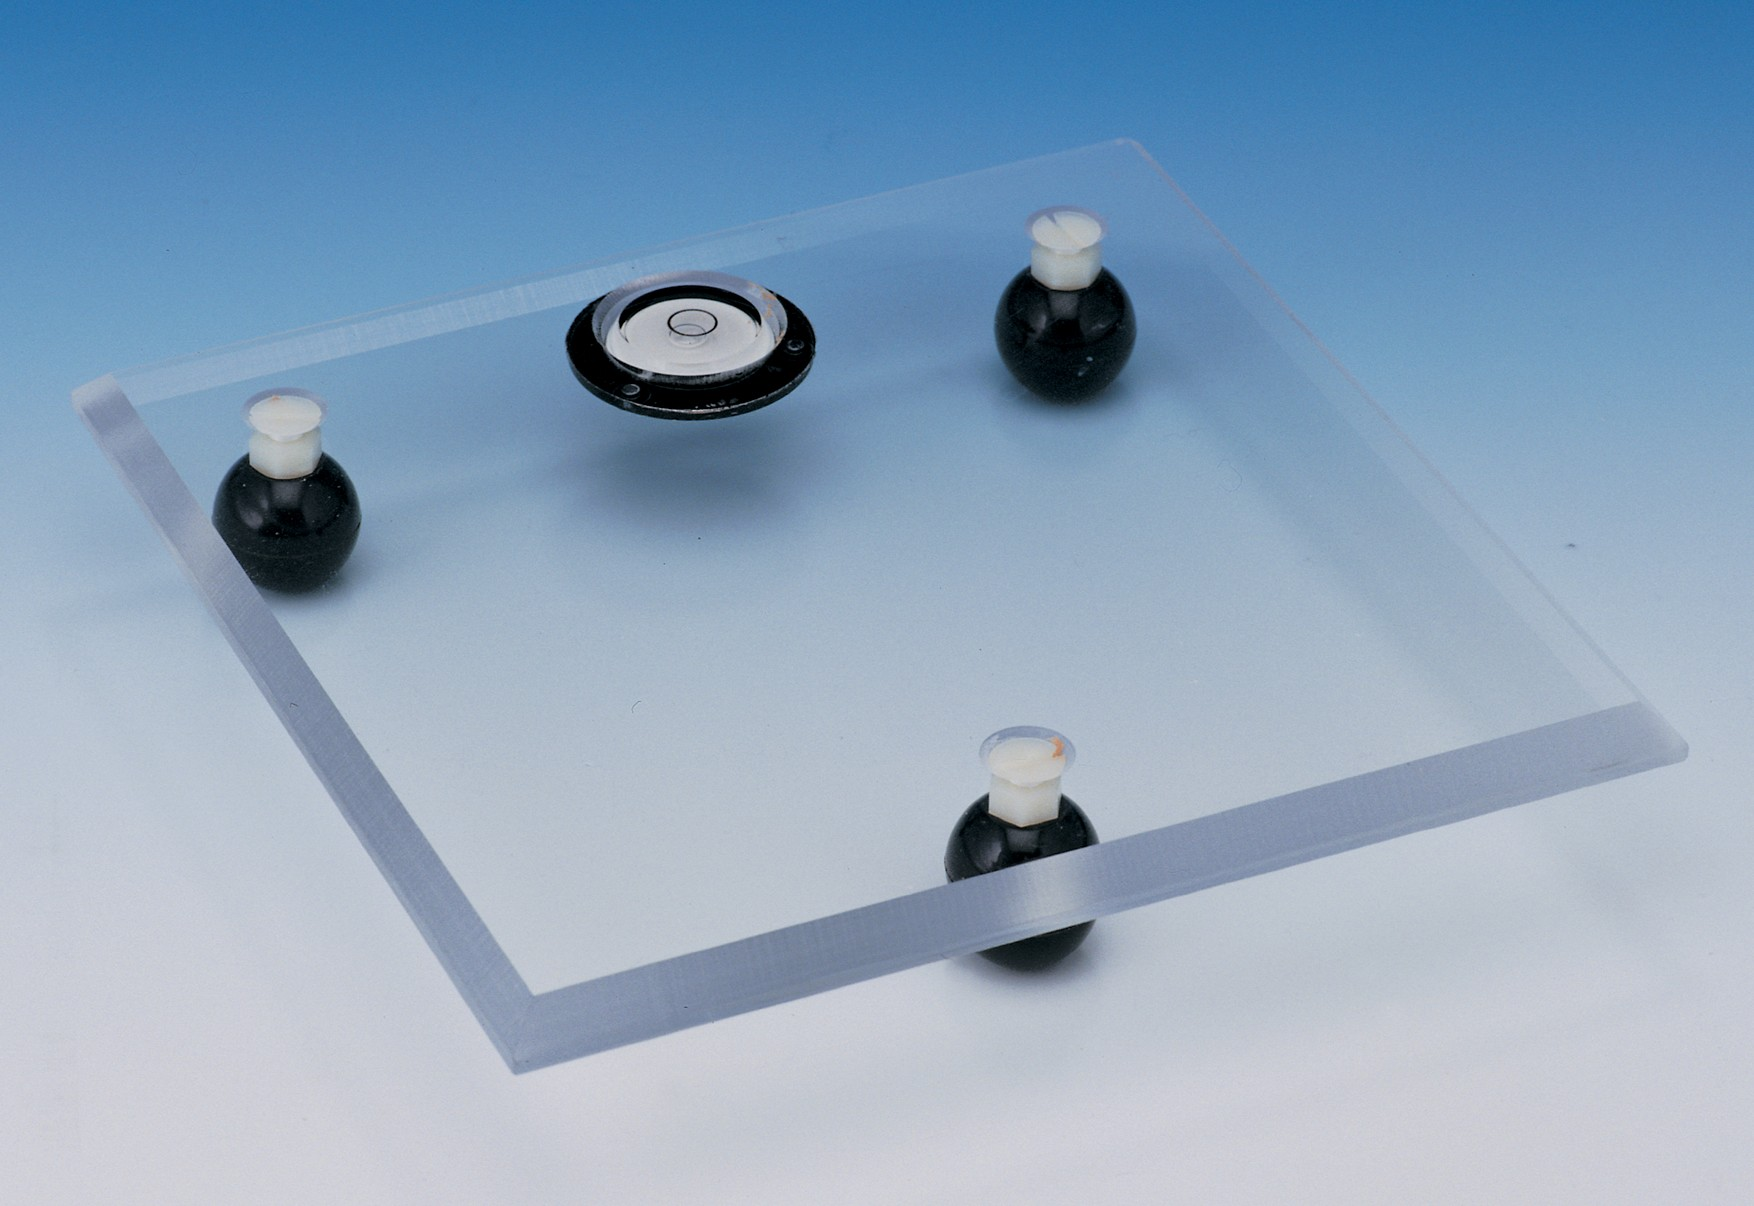 Leveling Table